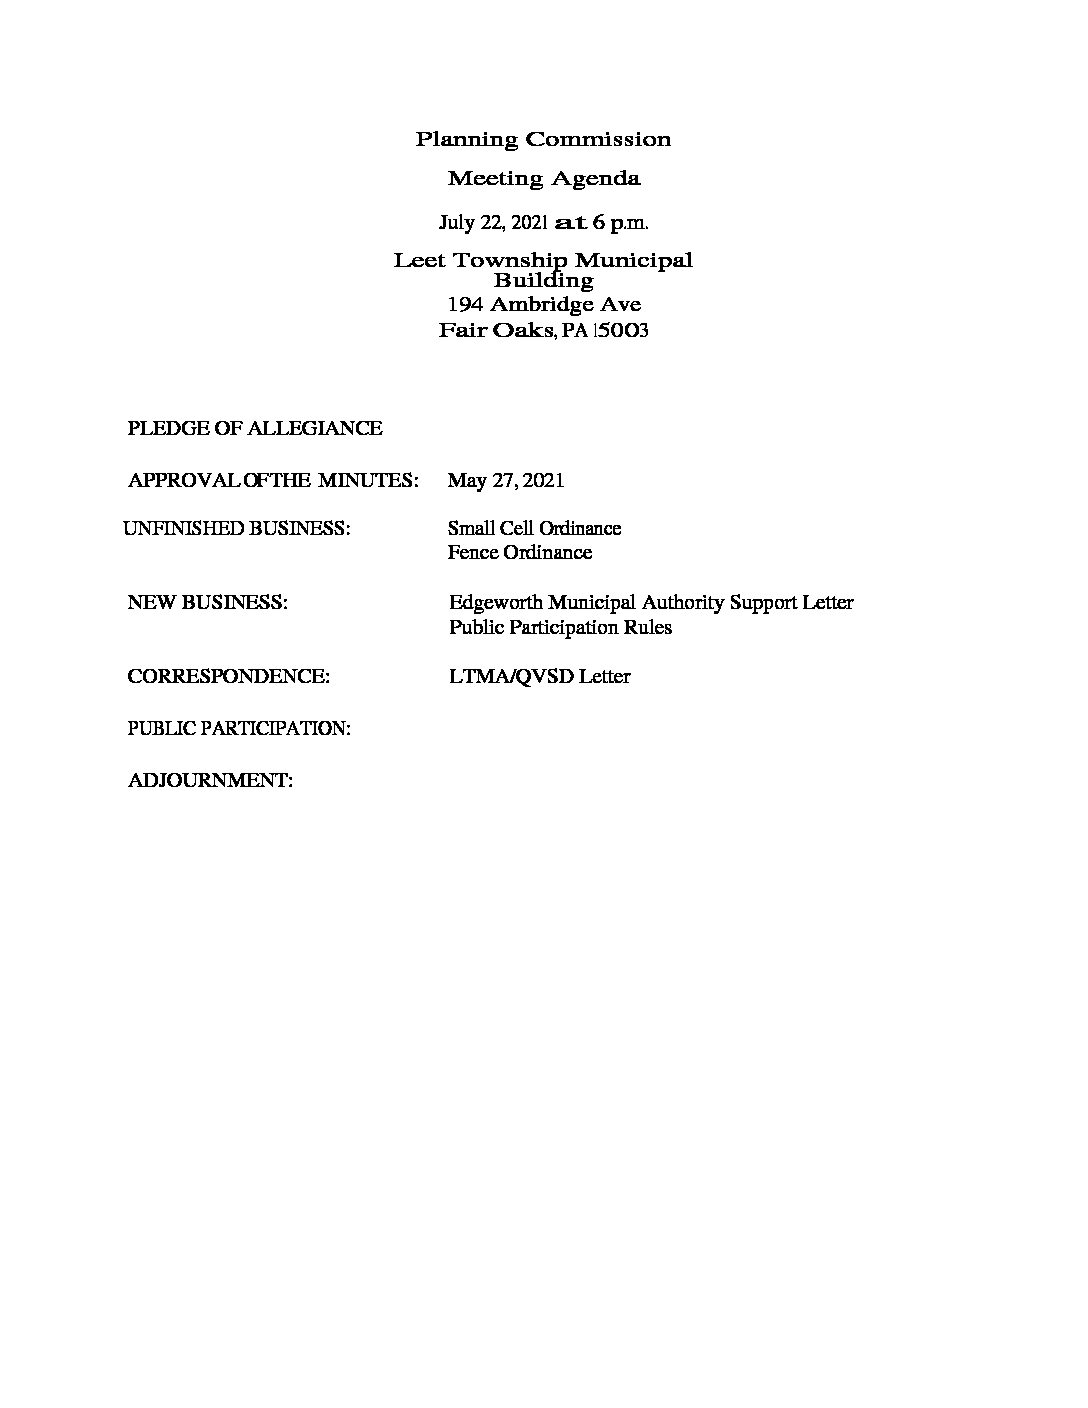 Planning Commission Meeting Agenda July 22, 2021